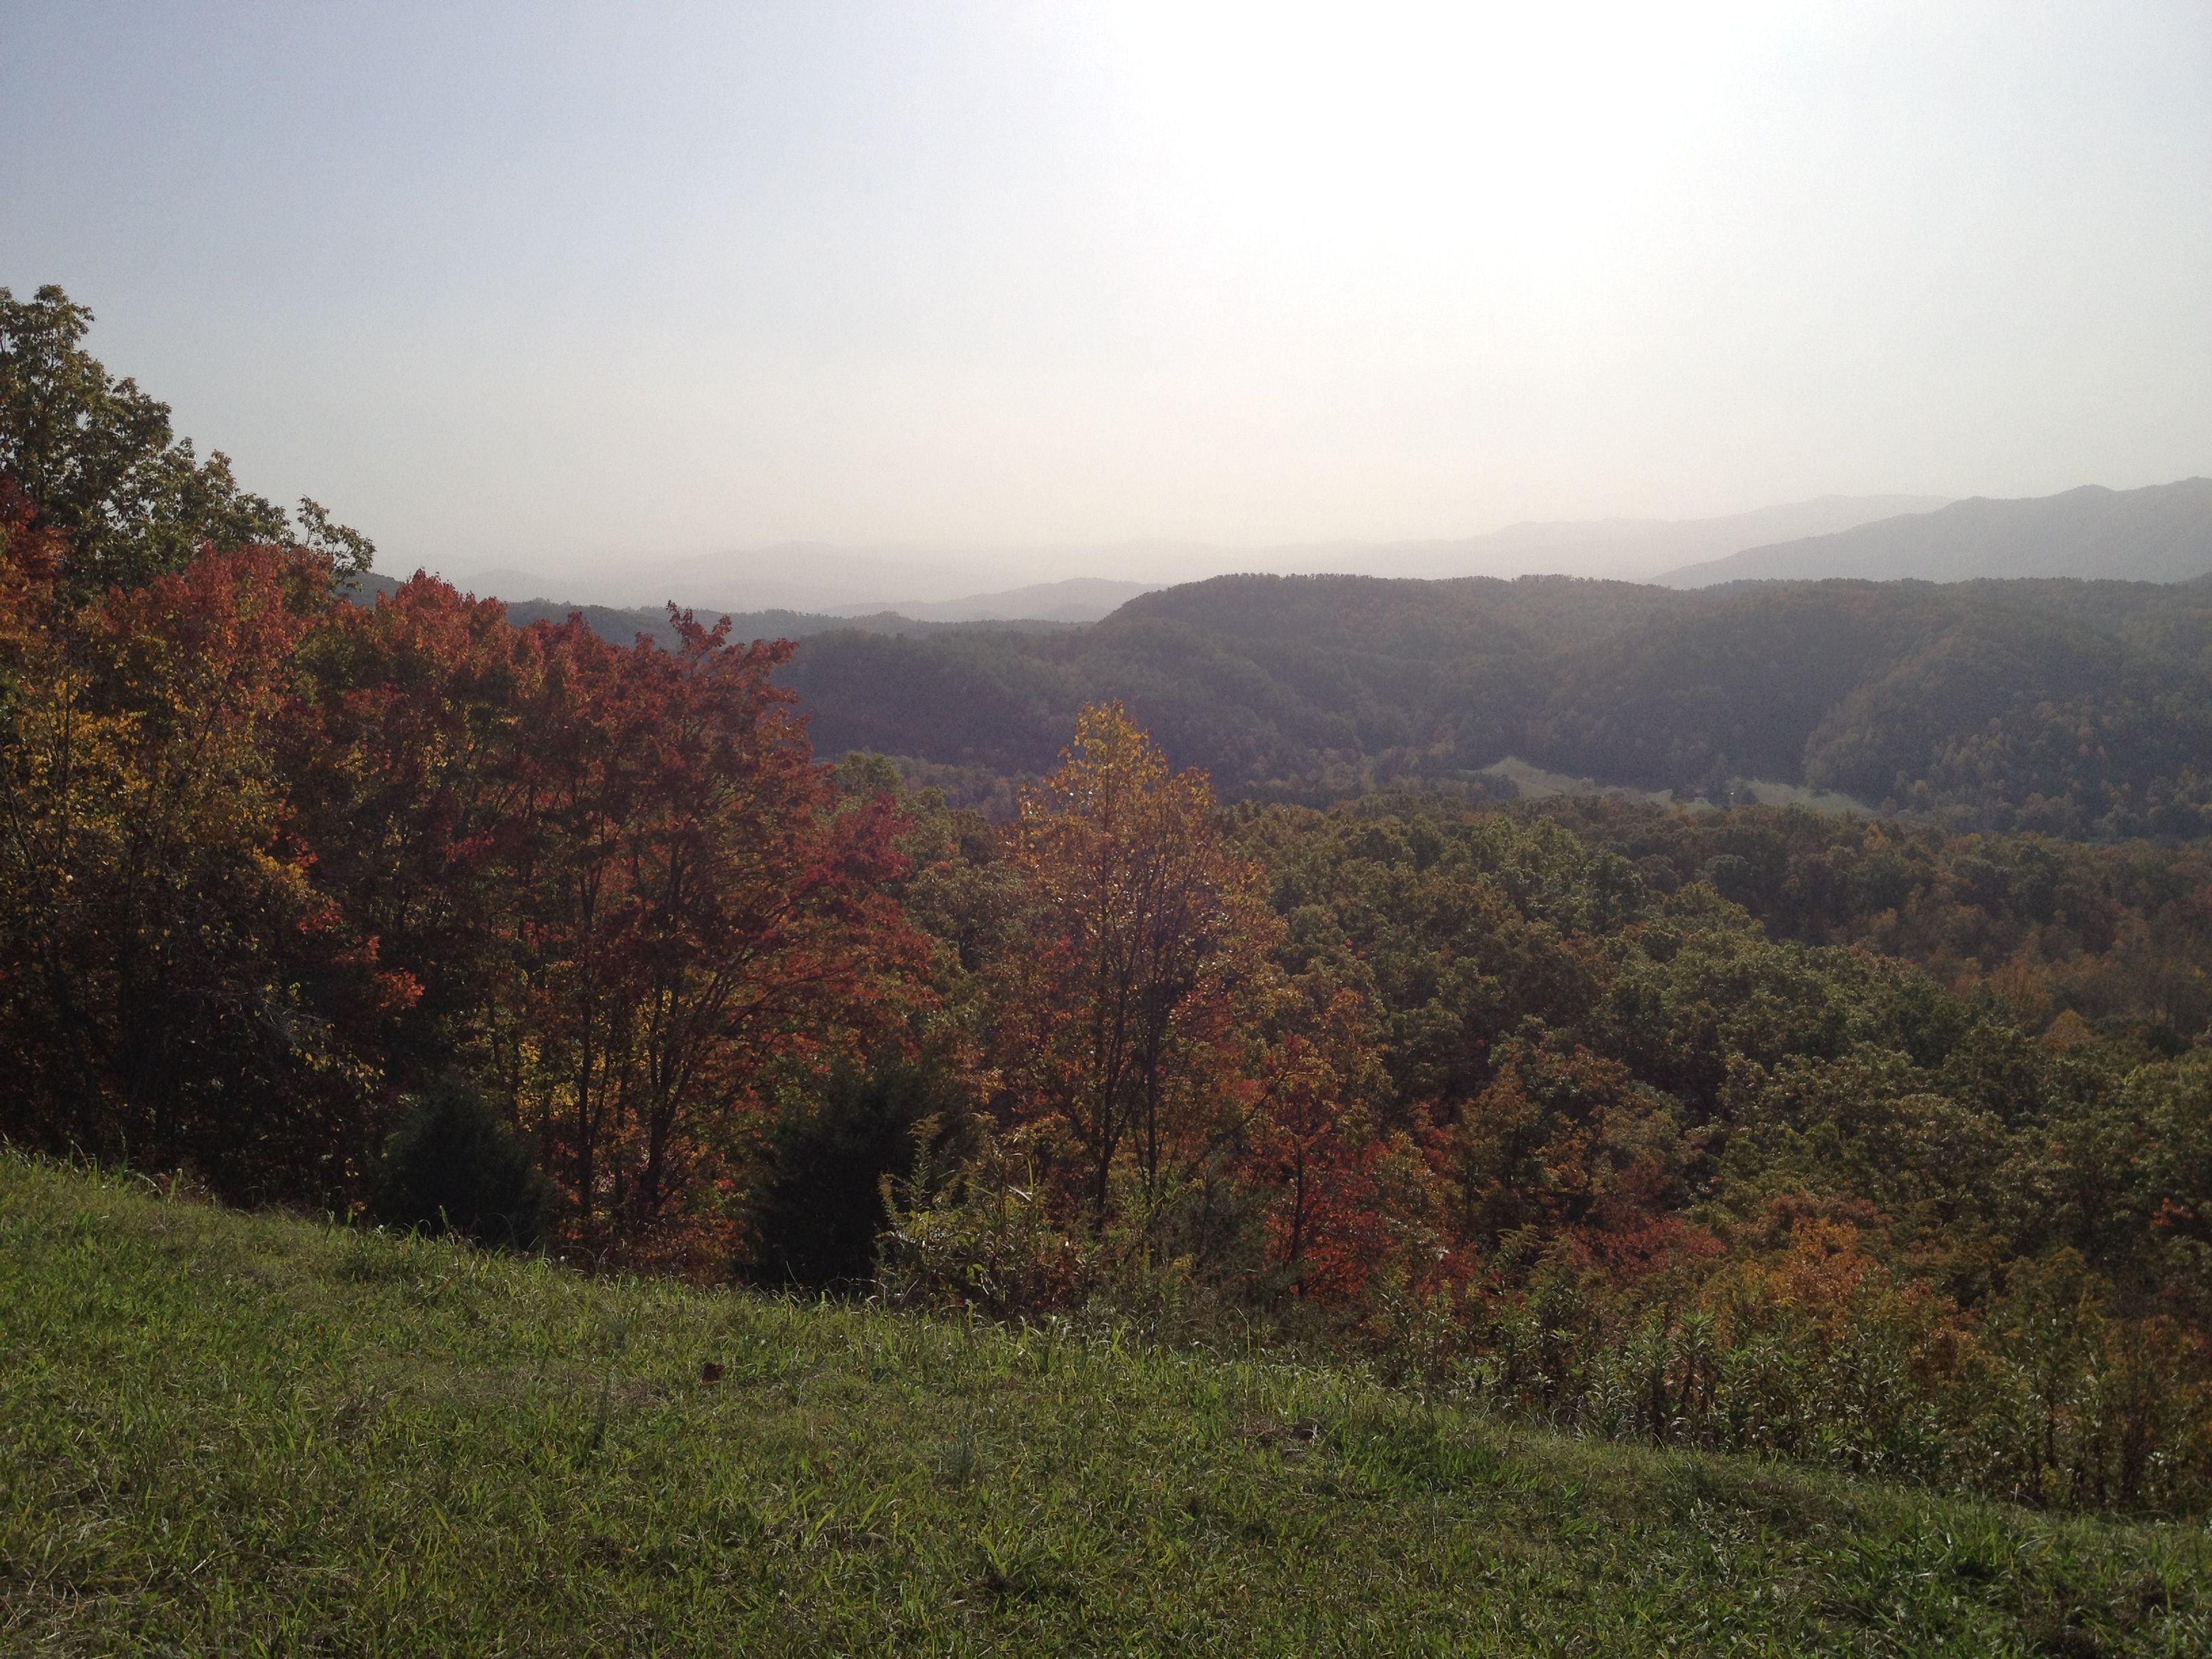 Foothills Parkway 10-12 - This picture does not do the Foothills Parkway justice.  It is an amazing drive w/awesome views!